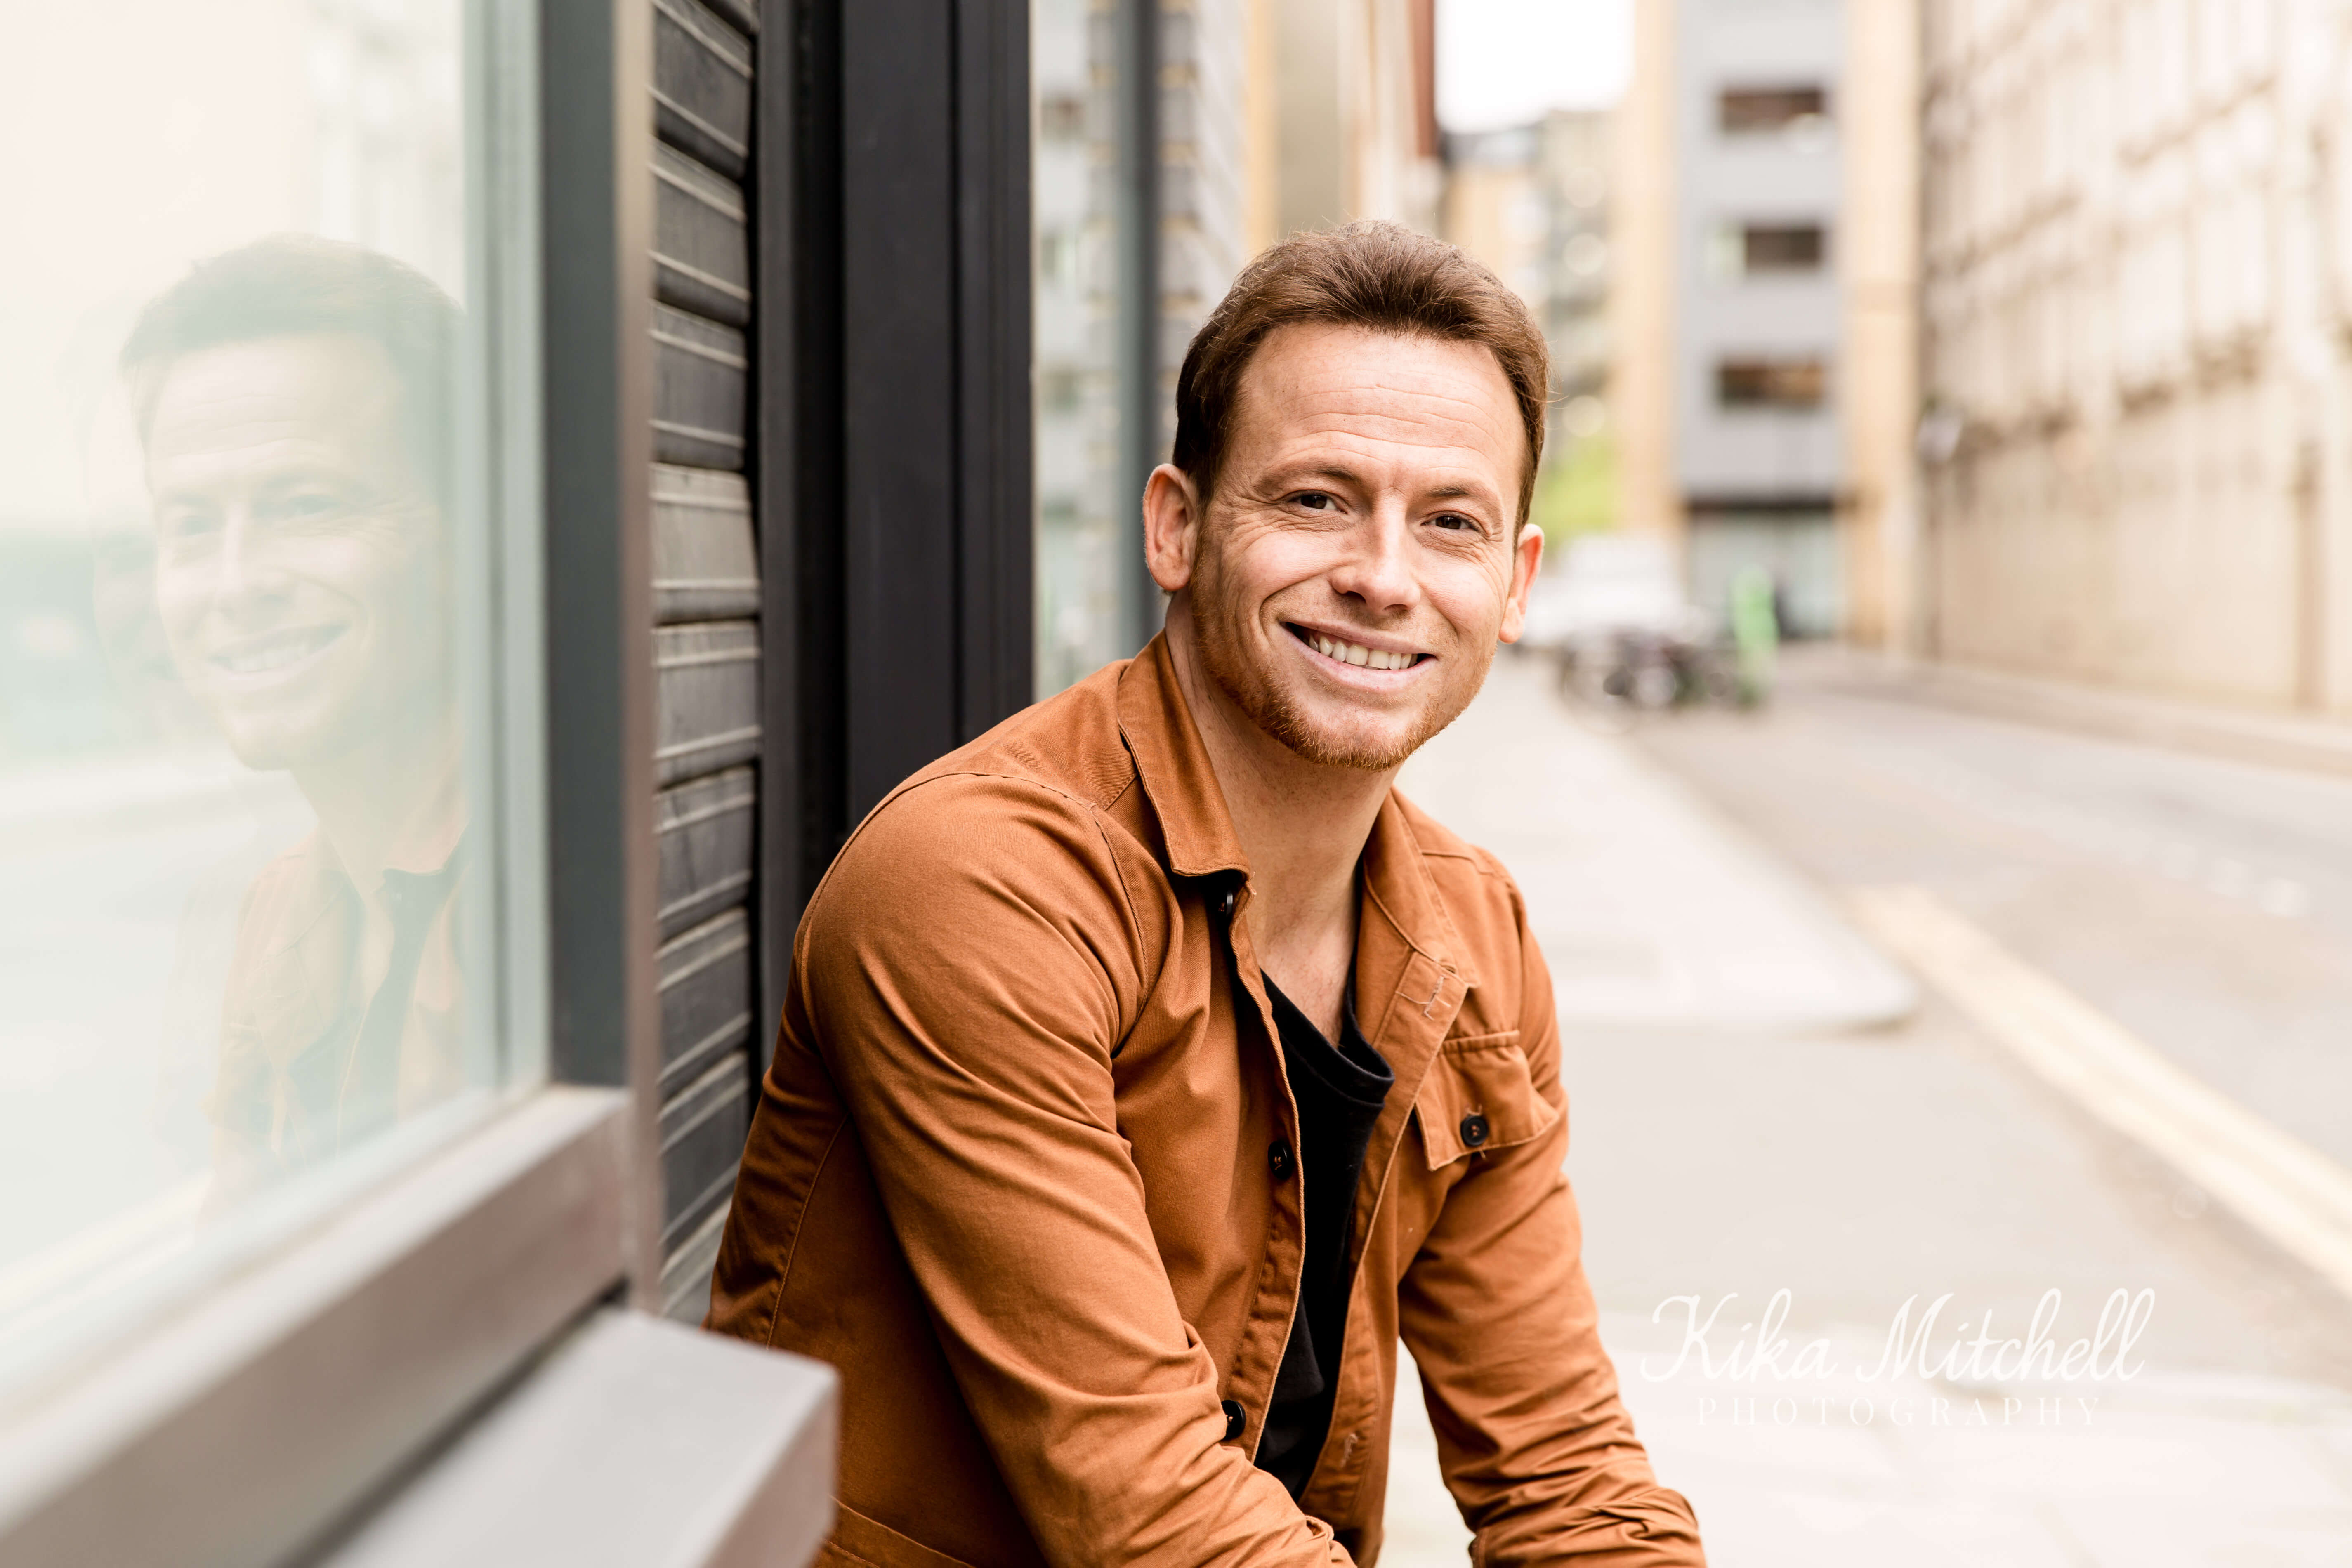 Your Personal Branding shoot by Chelmsford Photographer Kika MItchell Photography image of Joe Swash TV presenter in london street